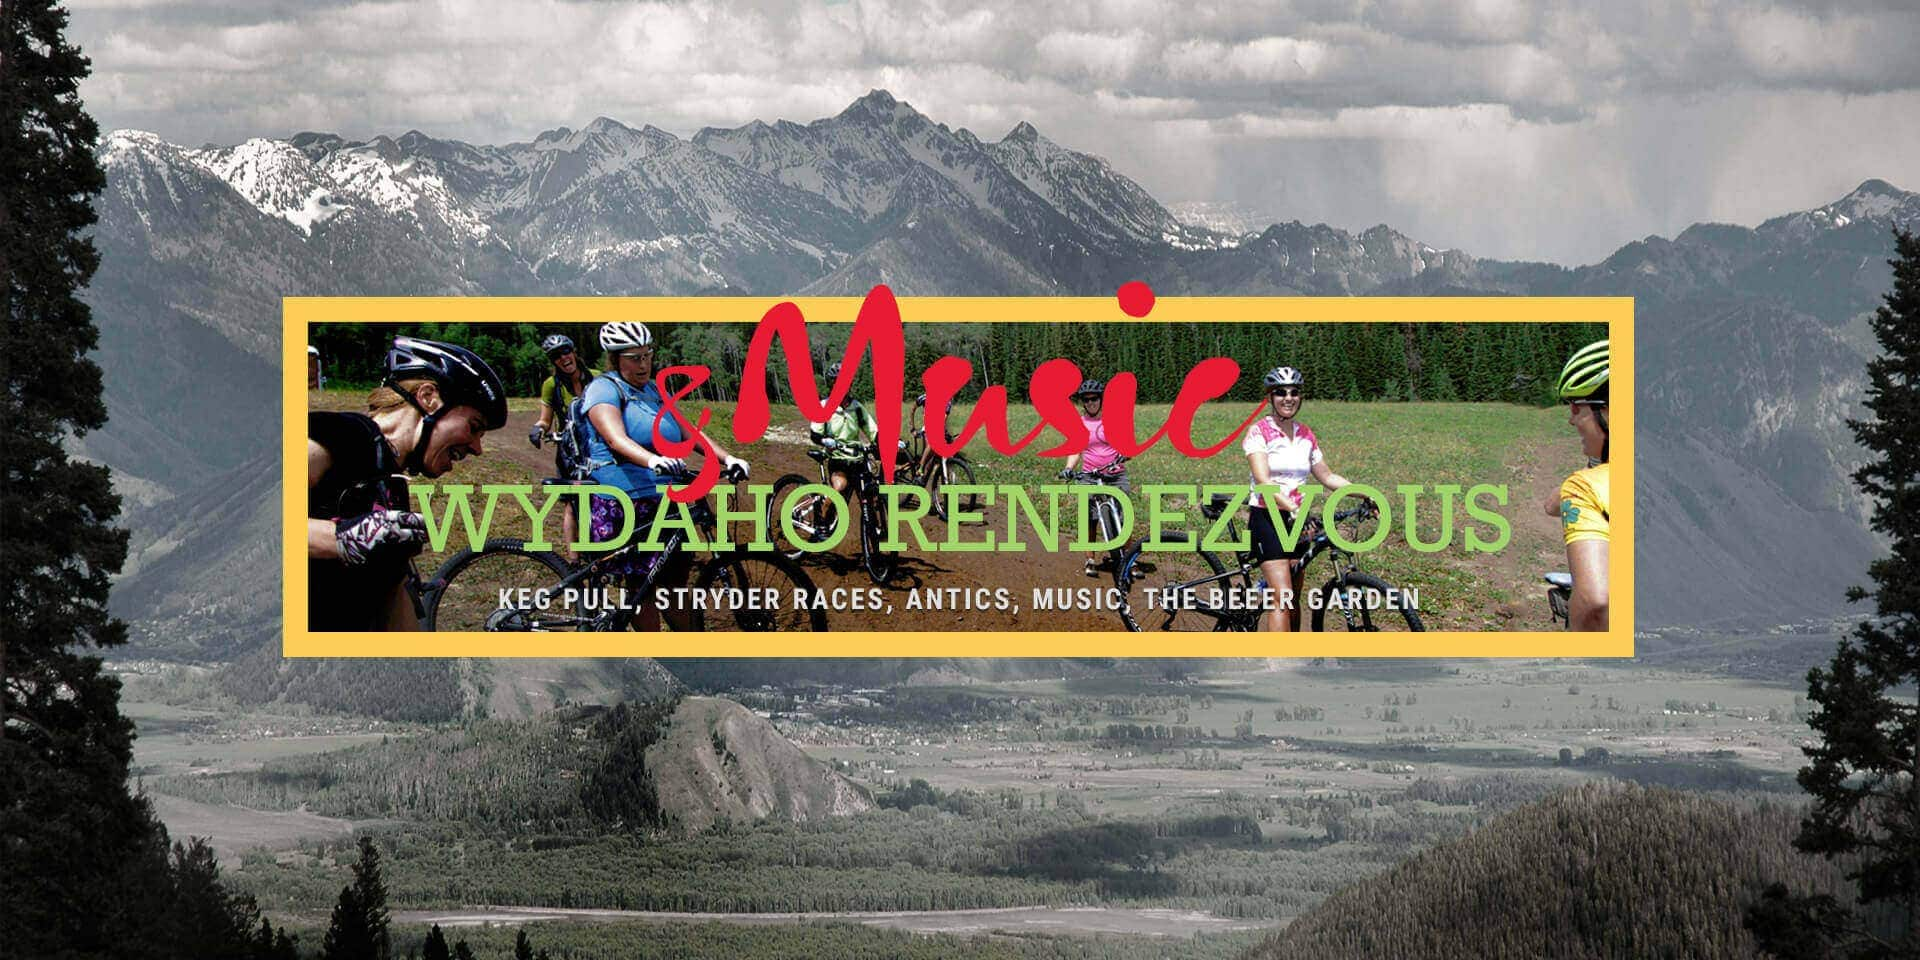 Wydaho-Rendezvous-Bike-Festival-Music-2